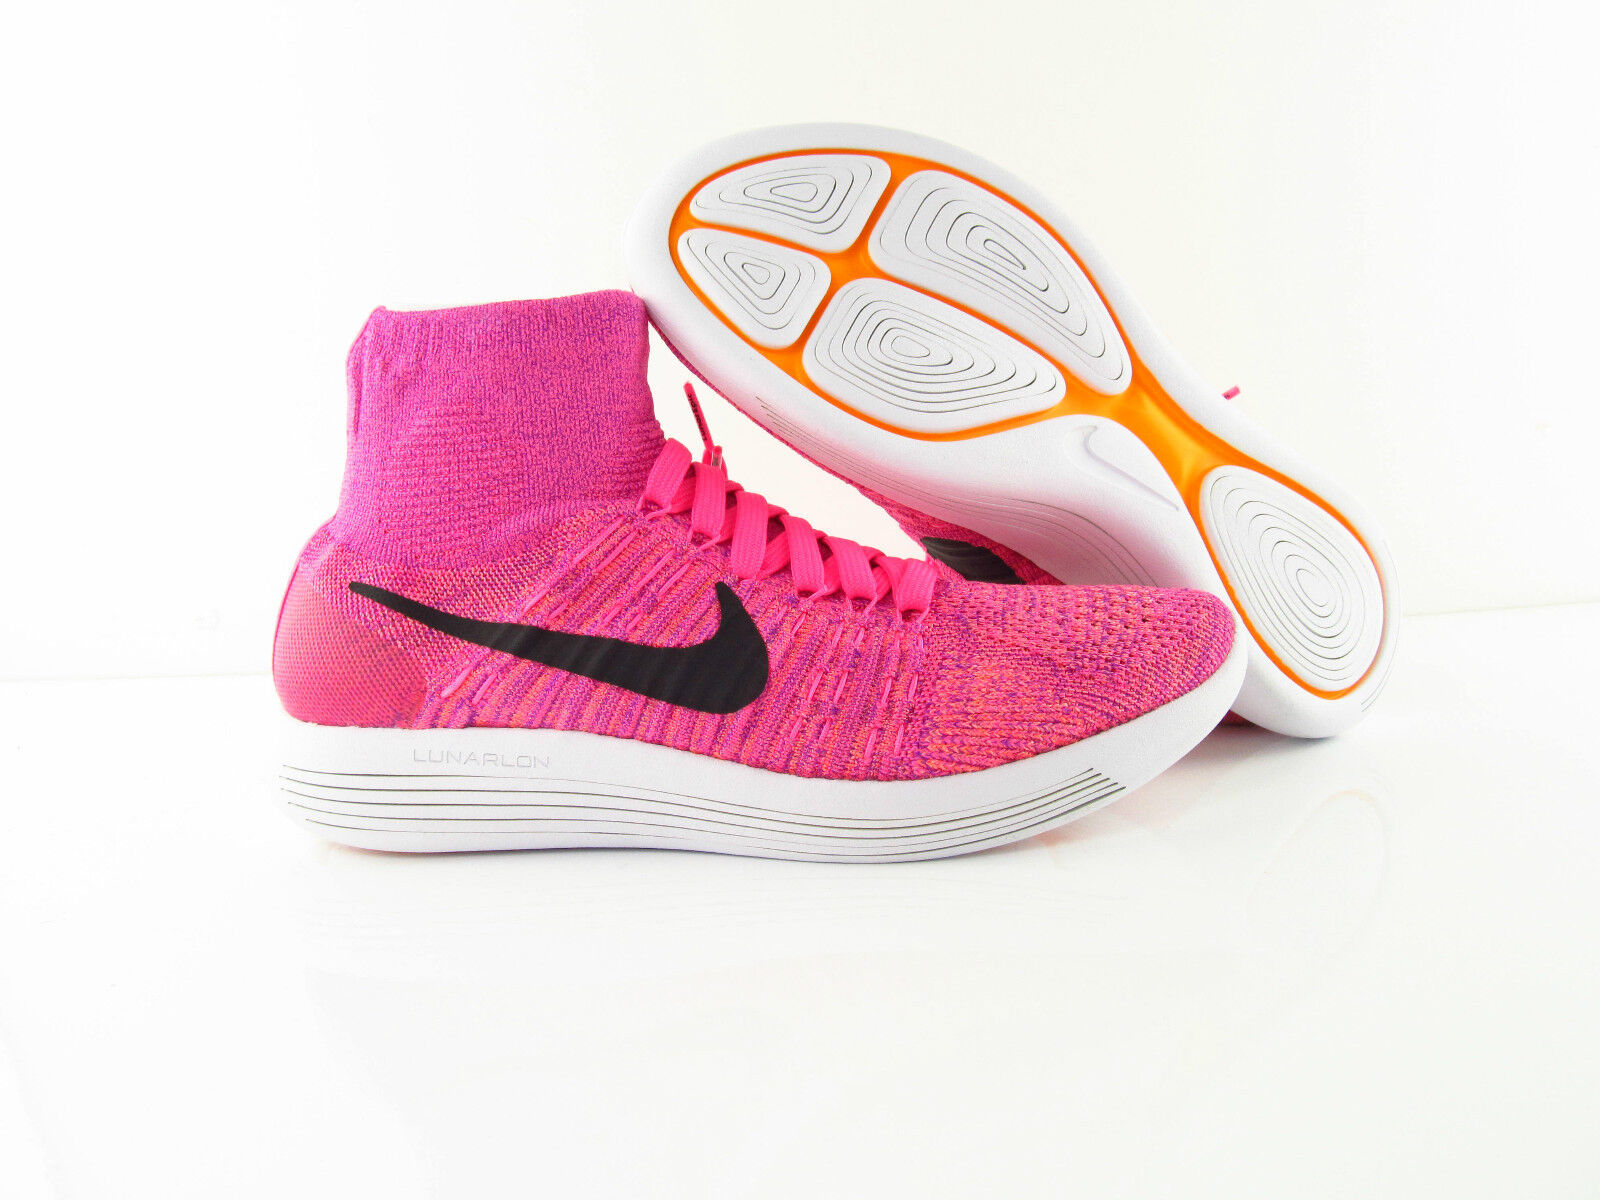 Nike Wmns Lunarepic Flyknit New Pink Pow Rosa Running New Flyknit US_8.5 UK_6 Eur 40 0e95f0